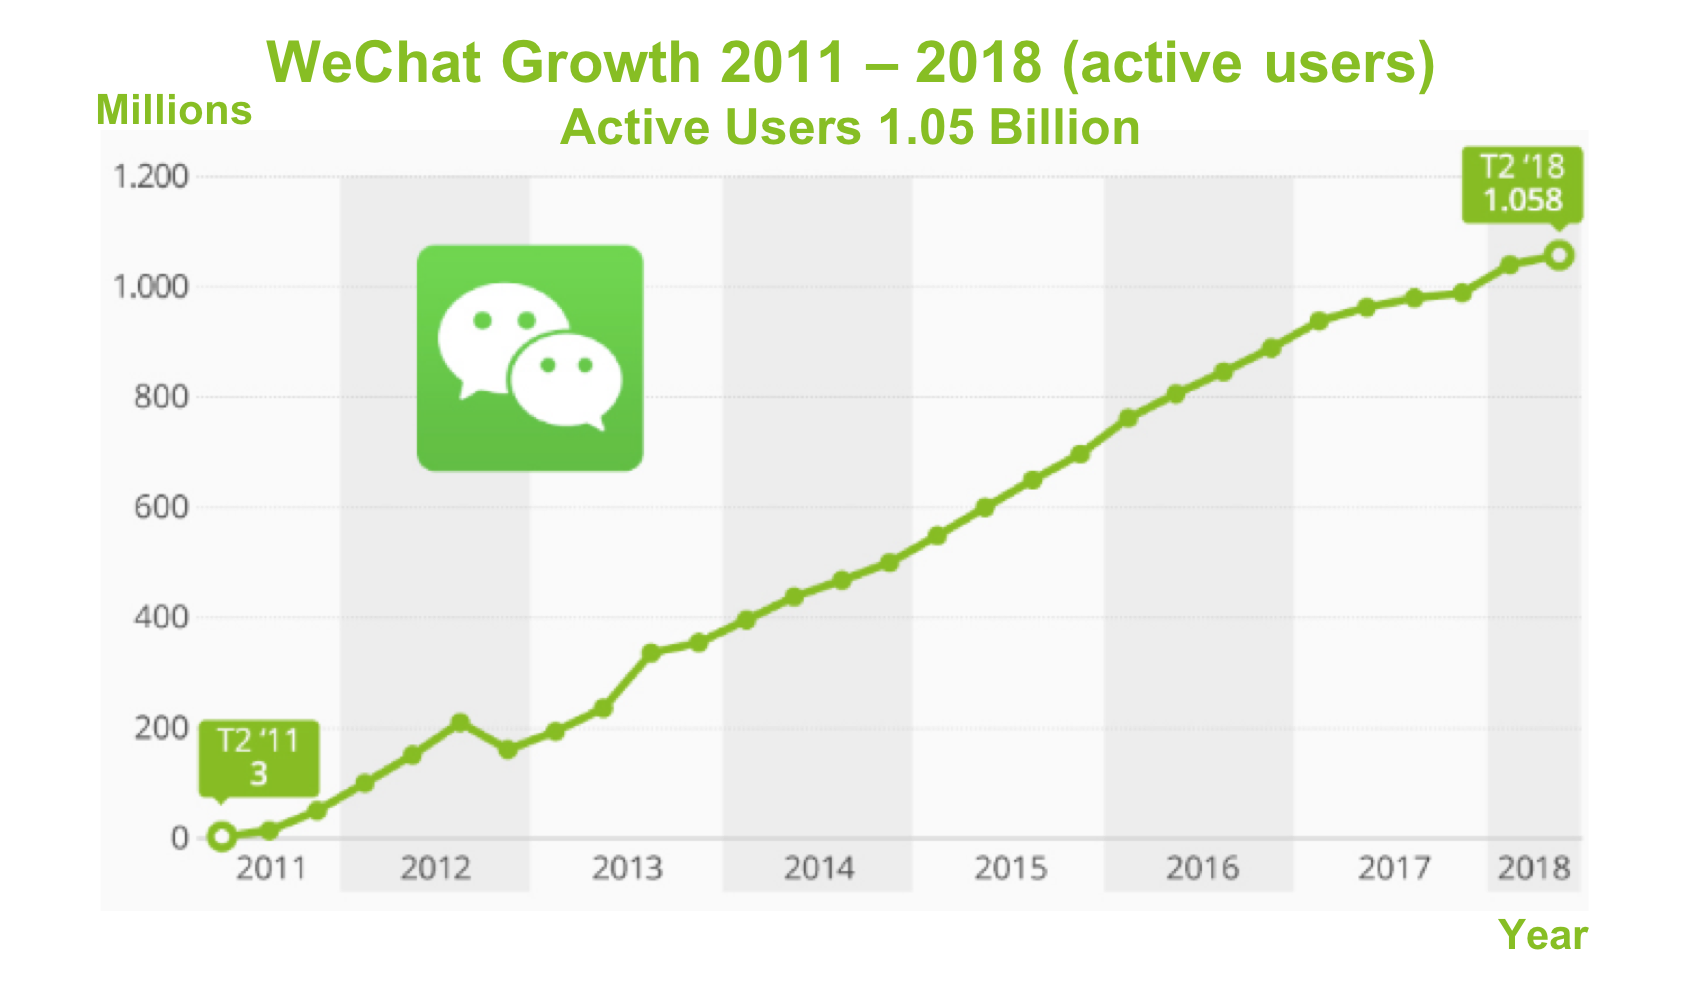 WeChat Growth 2018